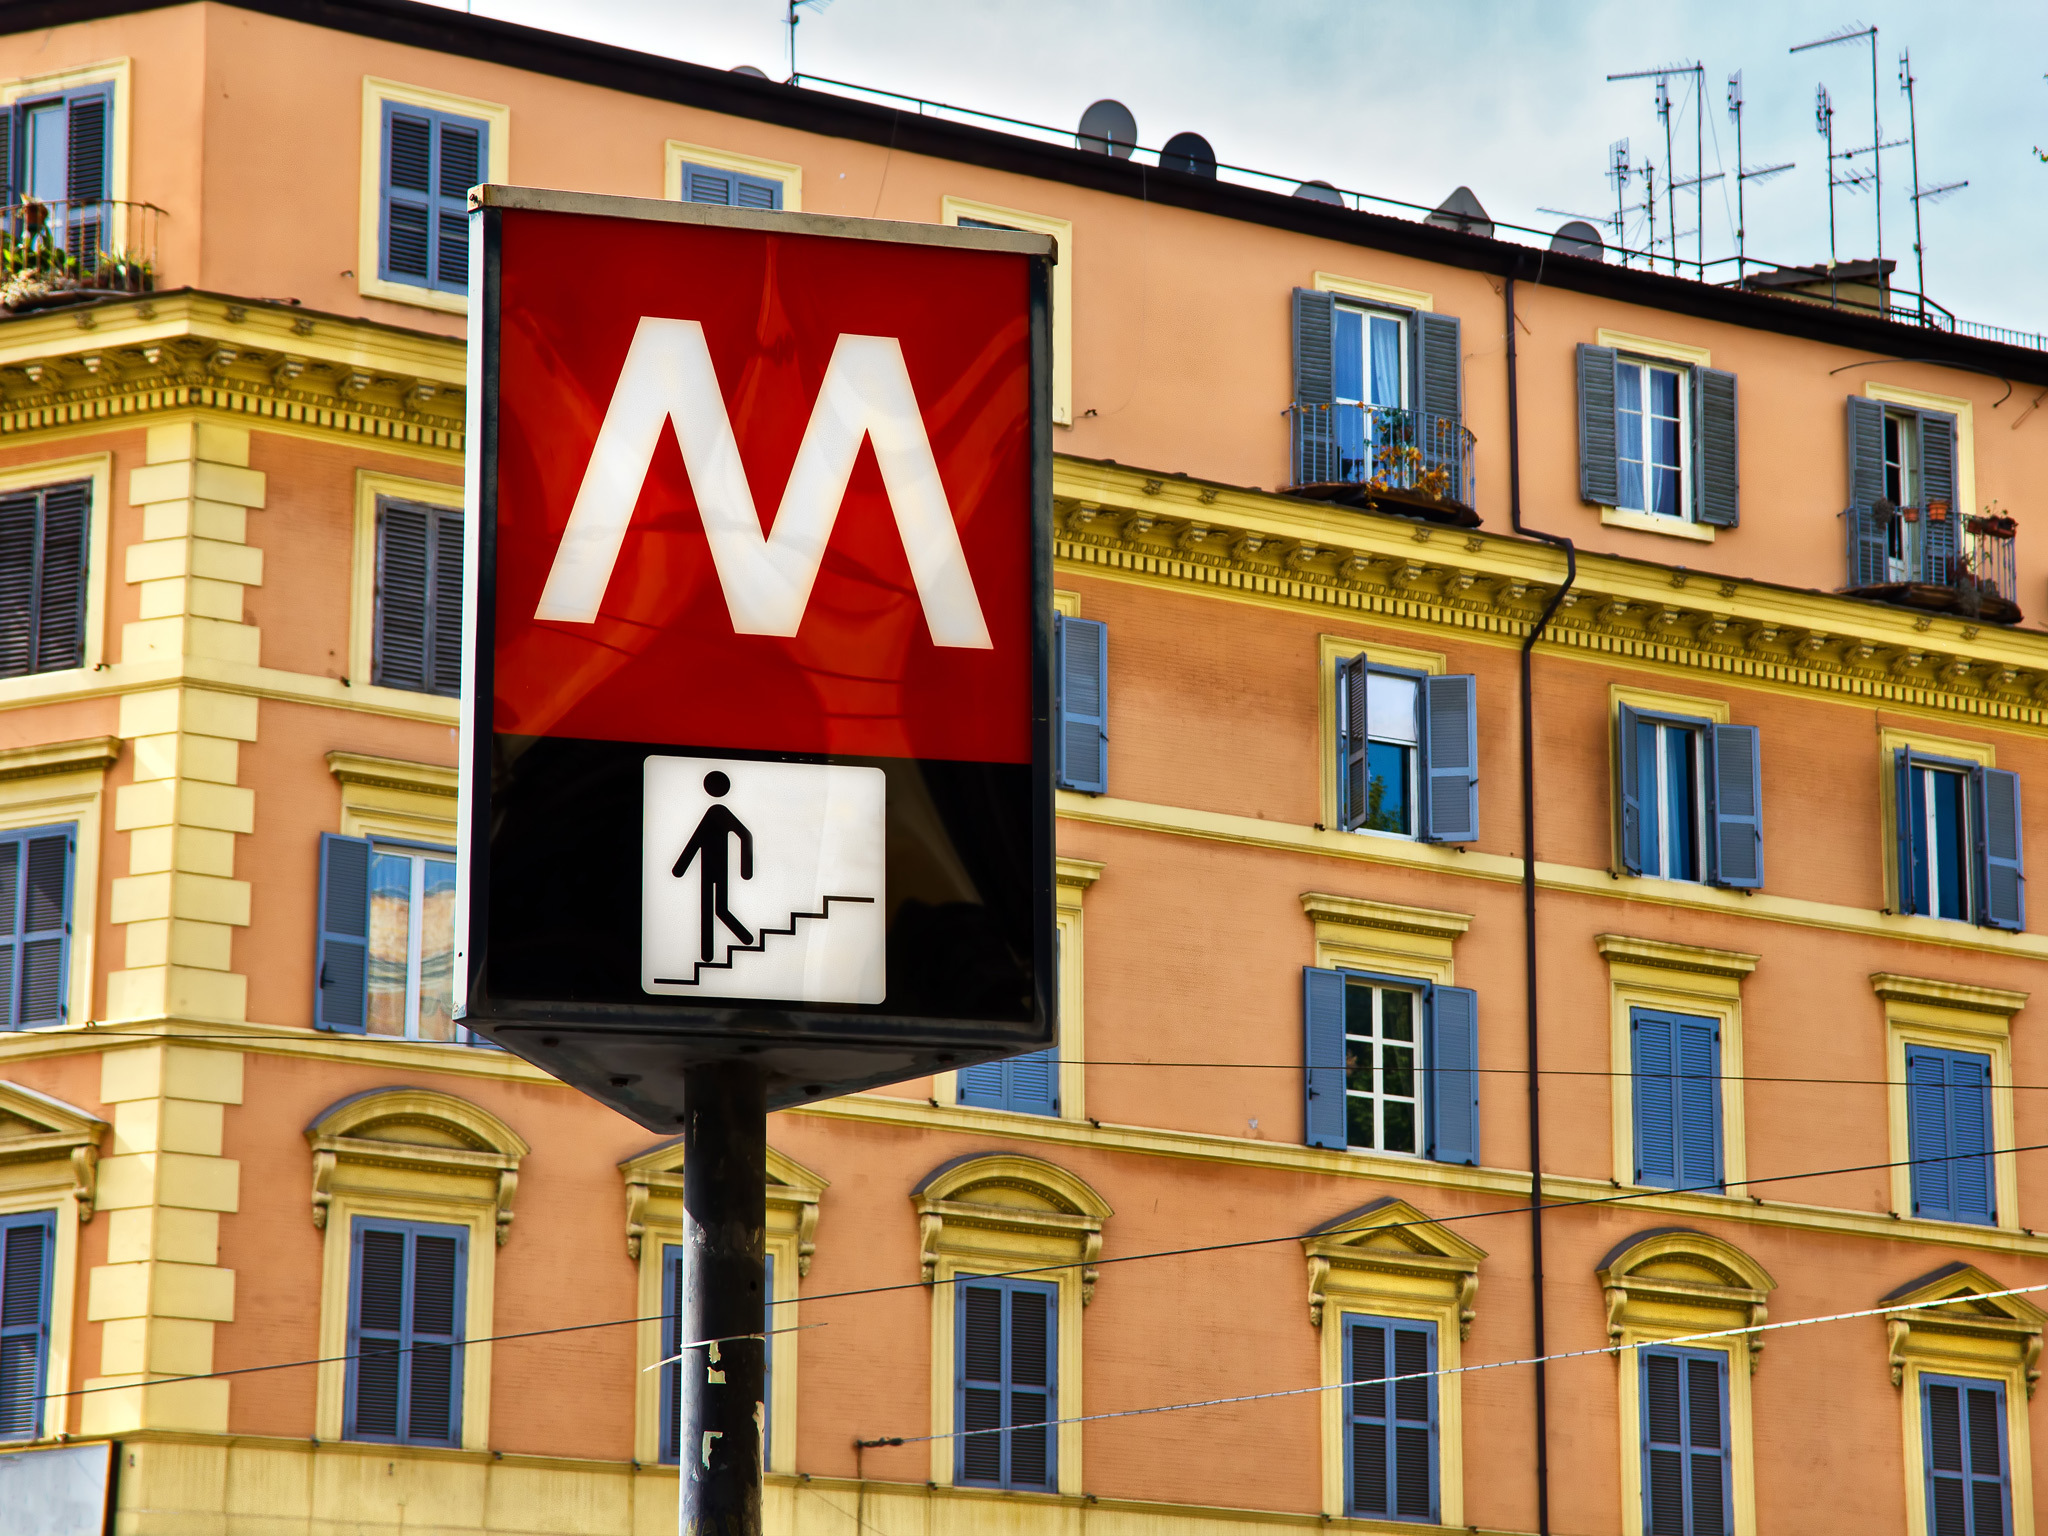 A Metro sign in Rome